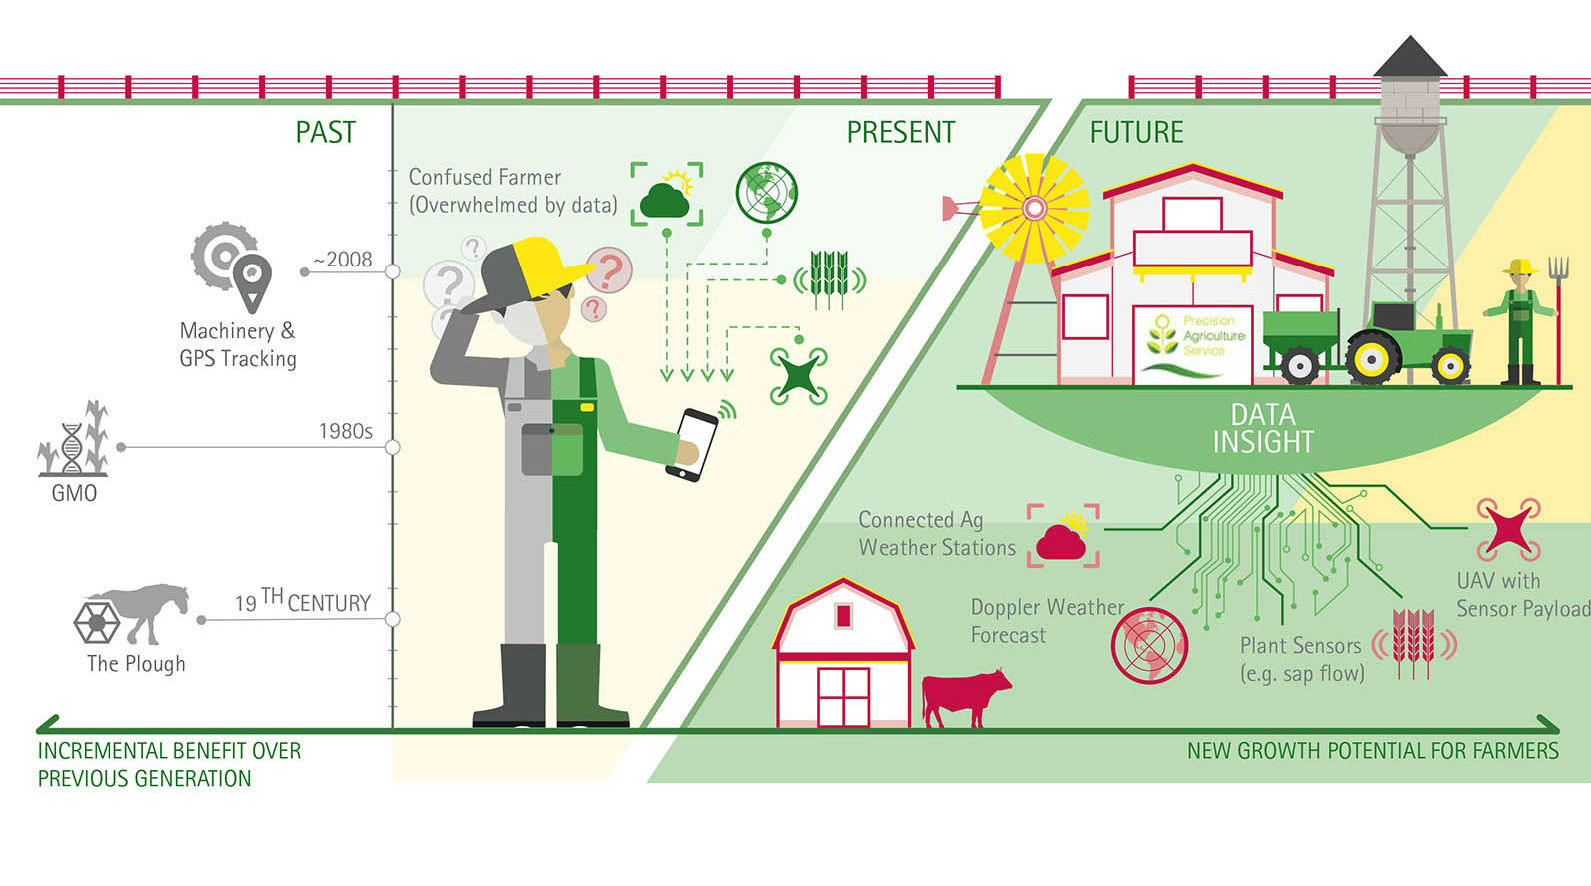 wireless sensors market in precision agriculture Precision agriculture or smart farming is powered by the internet of things (iot)  and  about embracing digital technologies such as sensors and the internet of  things (iot)  global precision agriculture market 2018-2022.